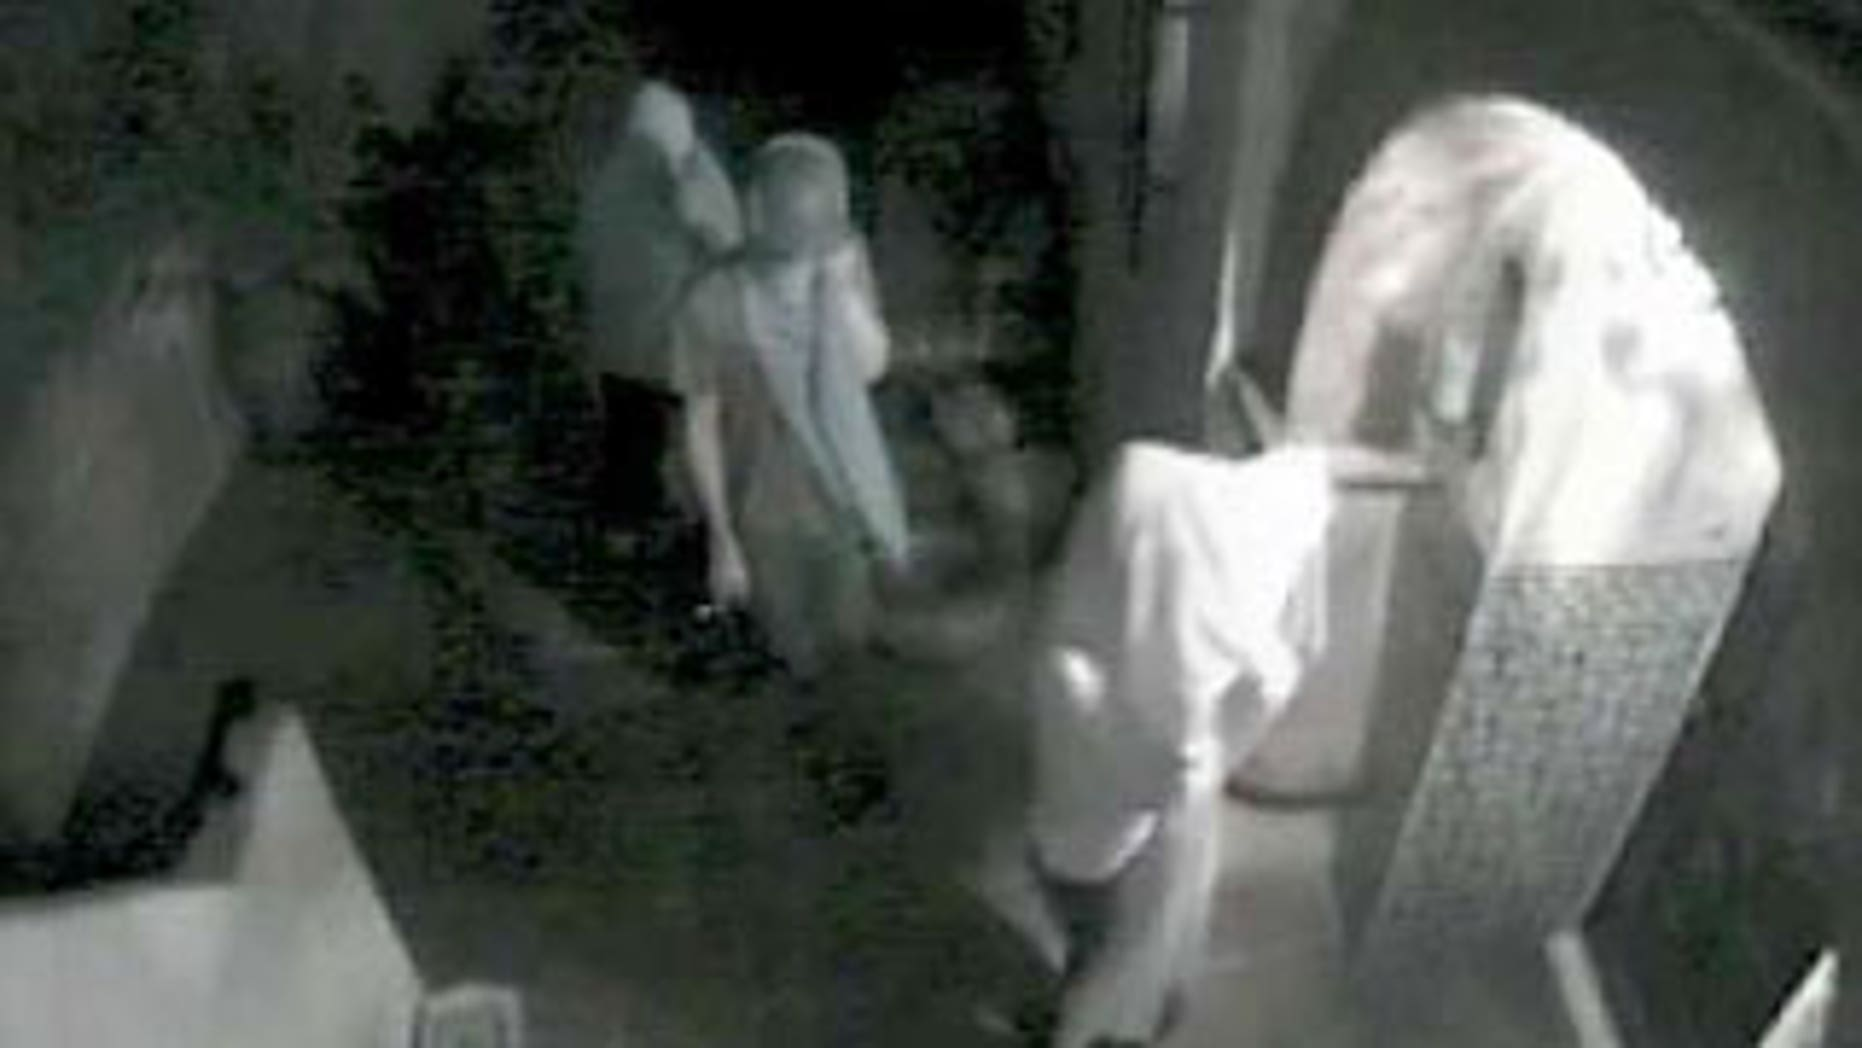 A video still from a surveillance camera provided by the Los Angeles Police Department shows three suspects attempting to enter the Hollywood Hills home of actress Lindsay Lohan in August 2009 in Los Angeles.